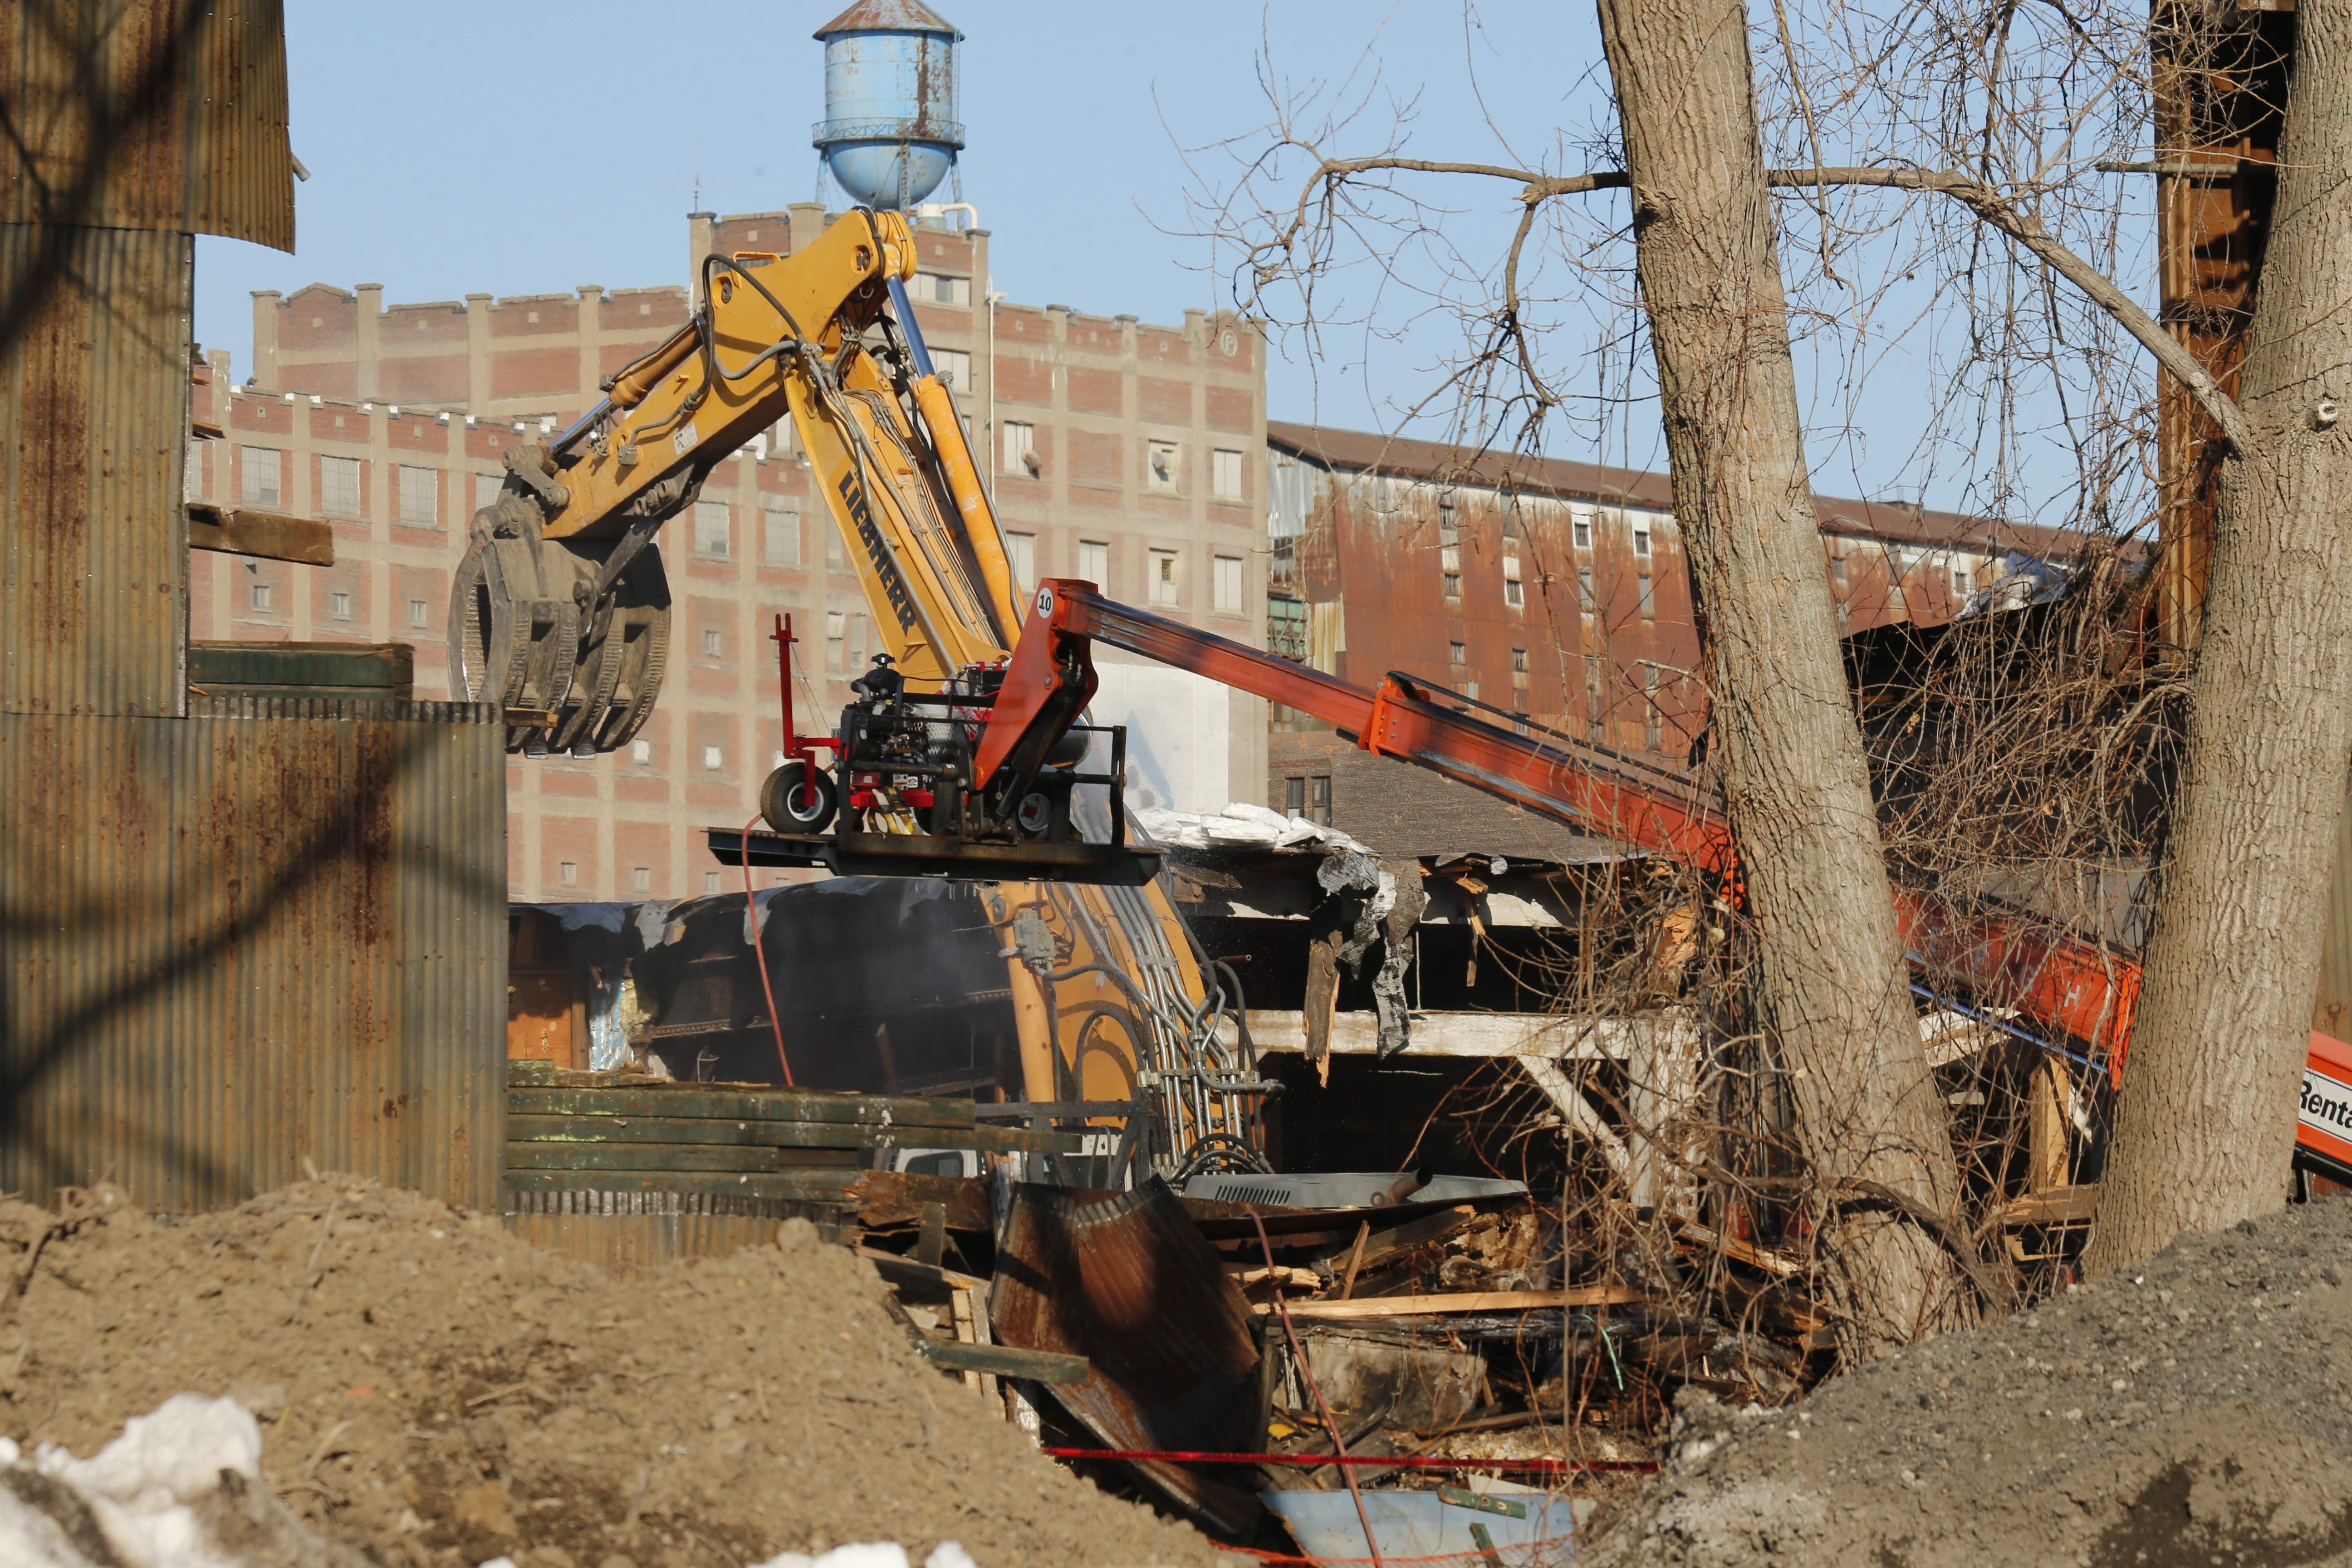 Demolition crews take down the deteriorating former Erie Freight House on Ohio Street on Monday. Within a year, the old industrial site will be home to the Buffalo River Landing luxury apartment complex, the newest trendy address for city residents.